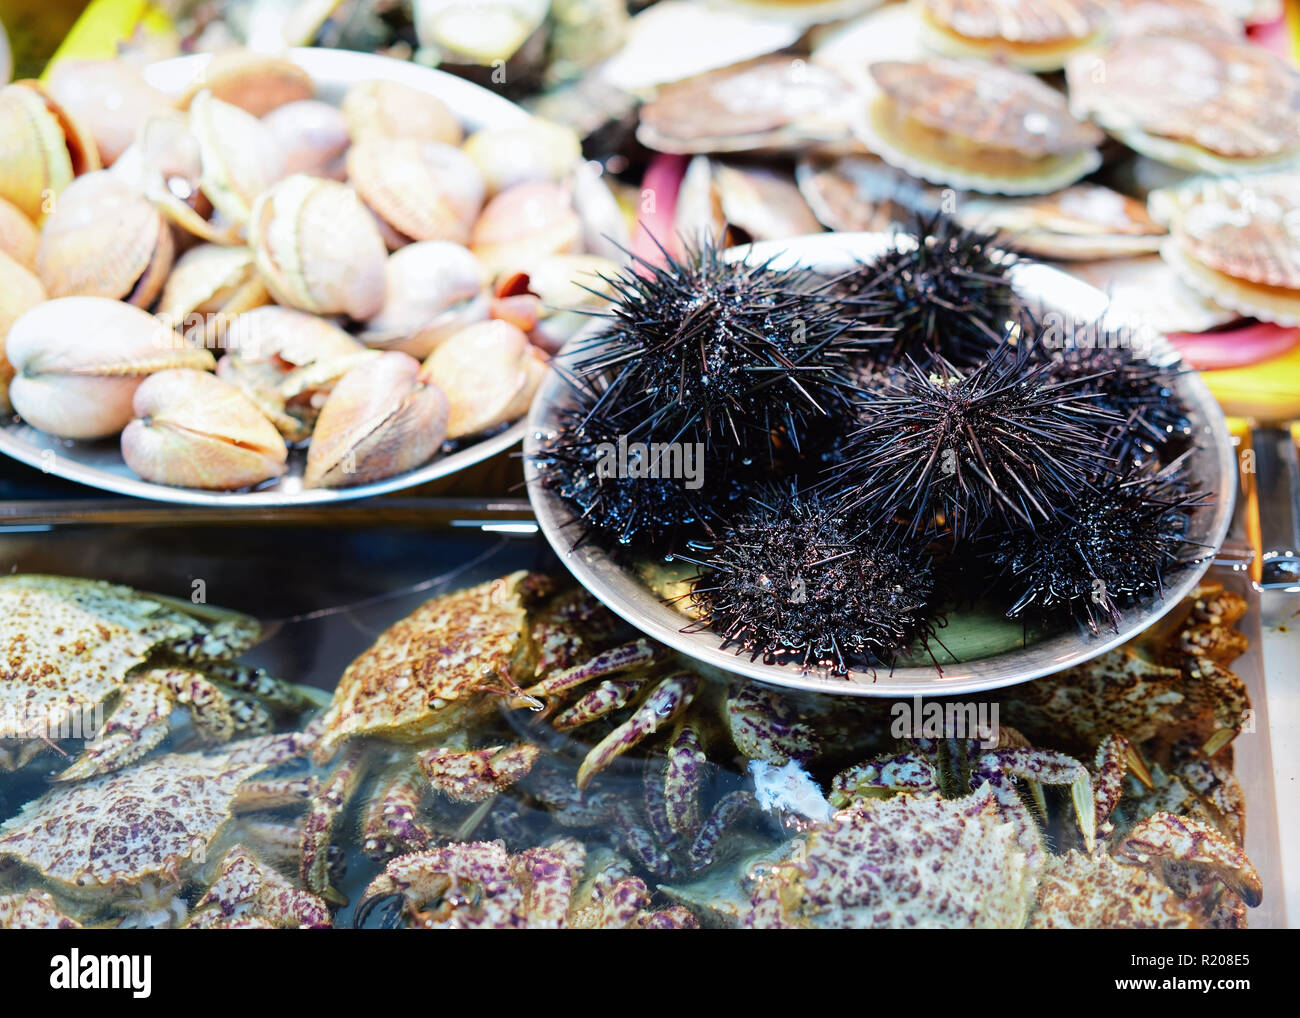 Sale of Fresh sea urchins, crabs and clams in Jagalchi famous fish market in Busan, South Korea Stock Photo